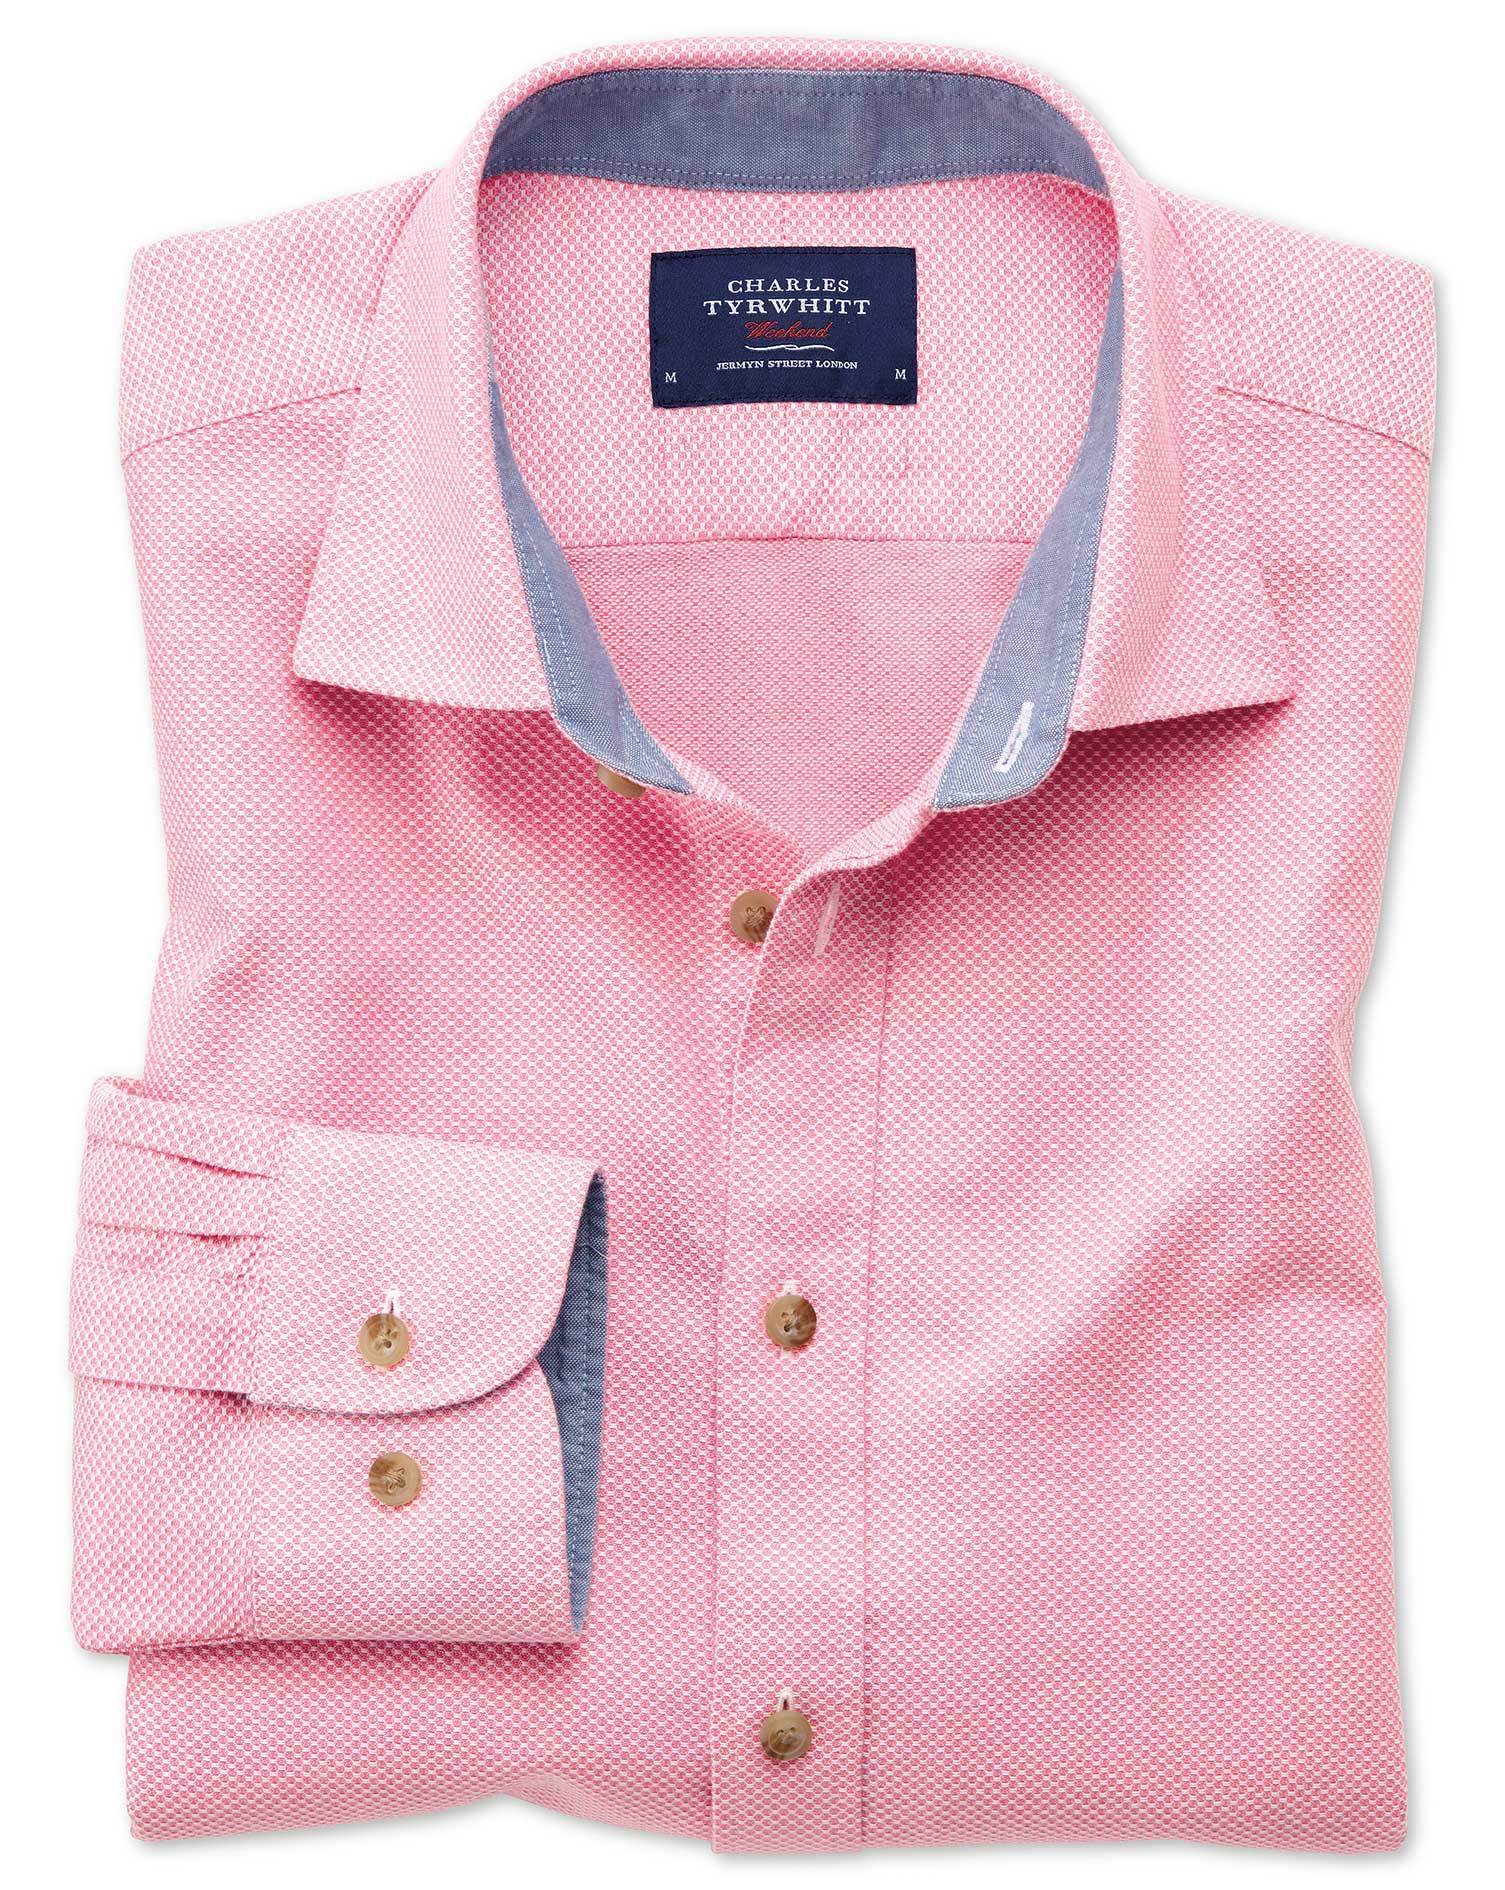 Slim Fit Washed Textured Pink Cotton Shirt Single Cuff Size Medium by Charles Tyrwhitt